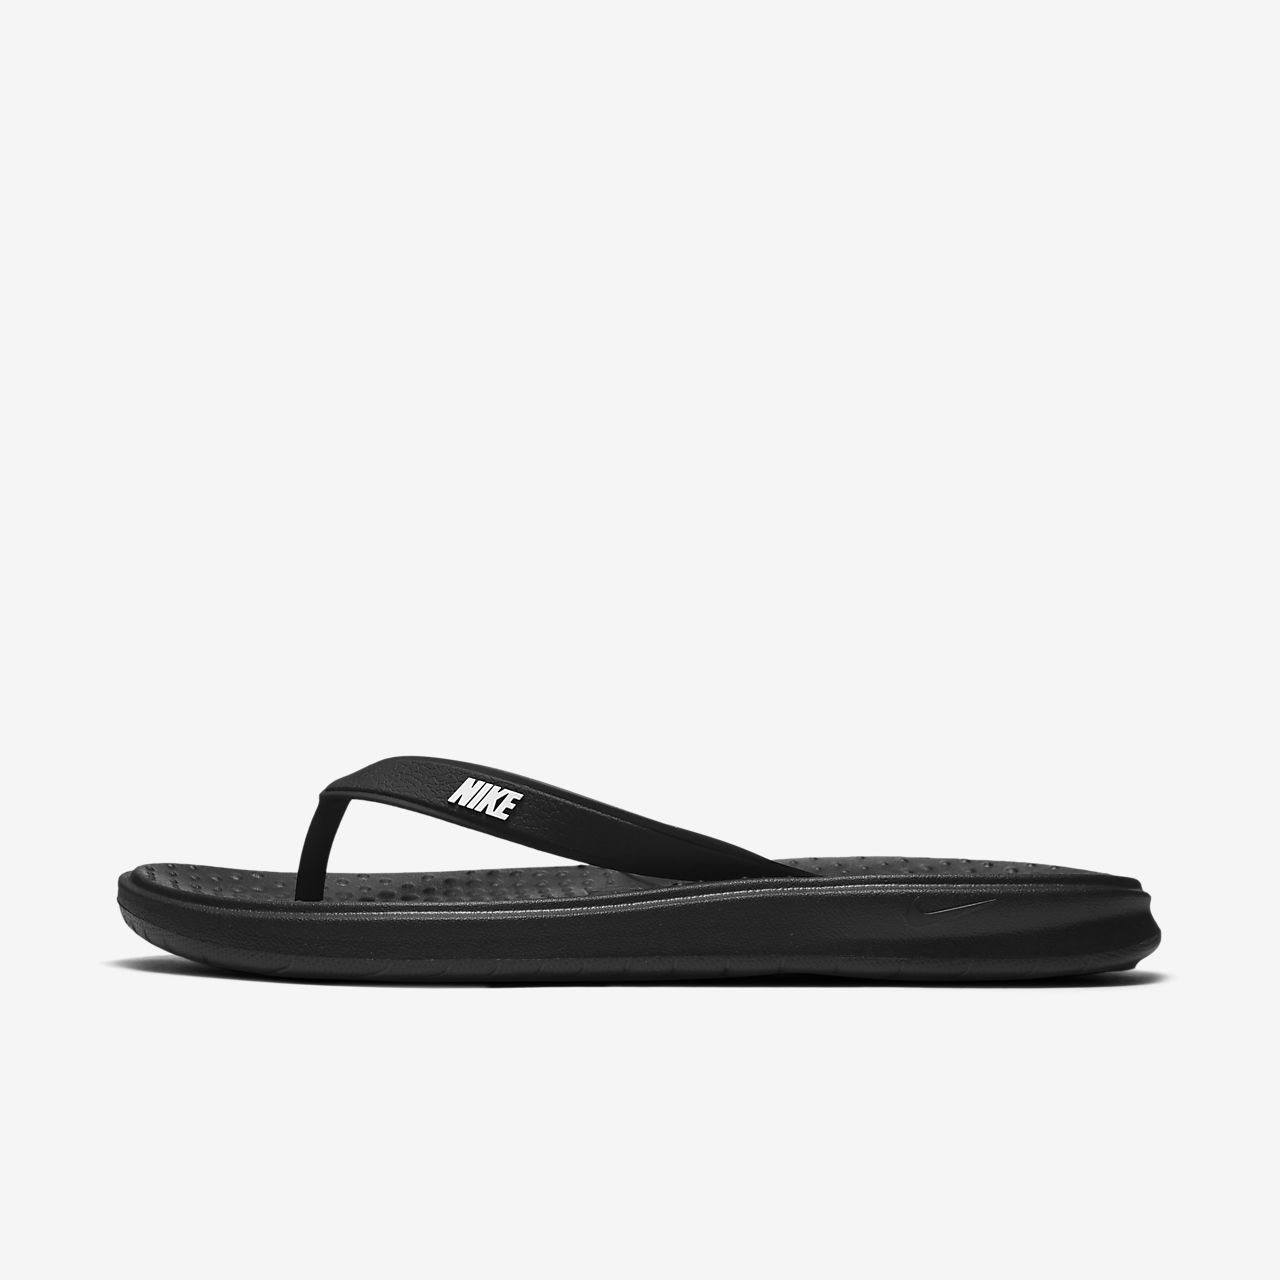 Tongs Nike Solay Thong pour Homme Meilleurs Prix Discount jNucGoqEy